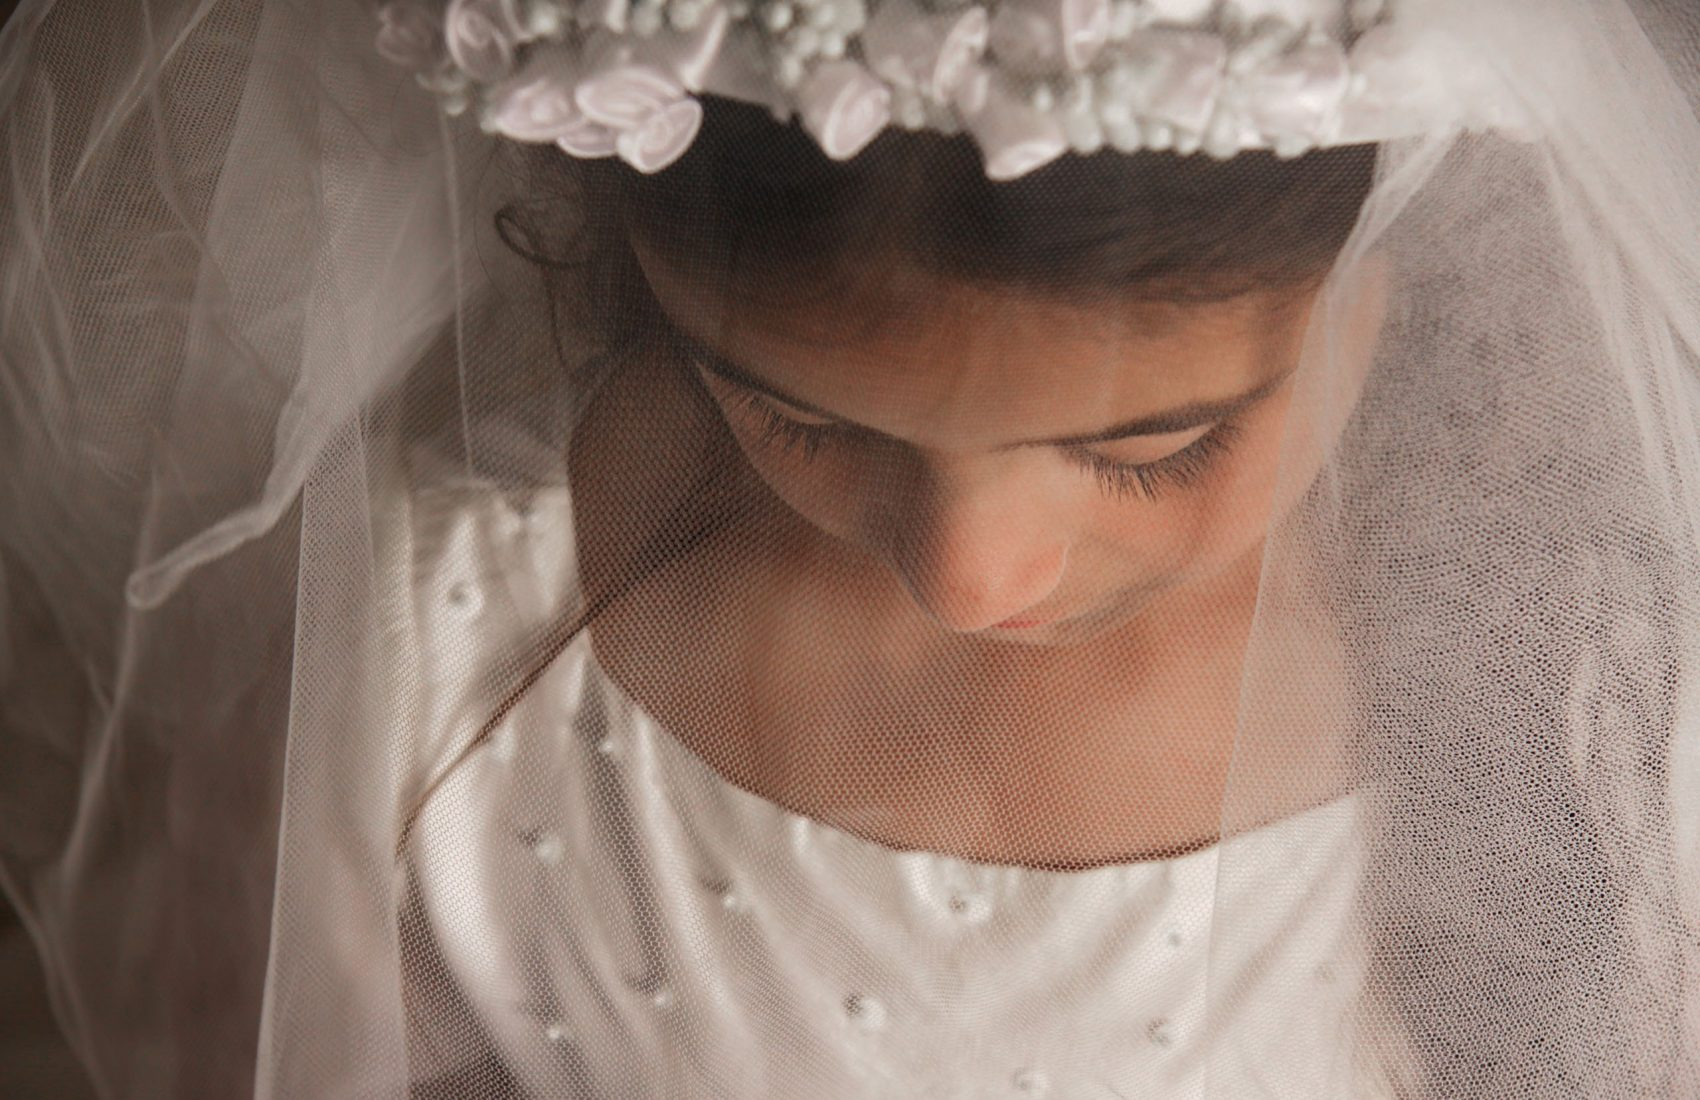 A young girl preparing for her holy communion, photographed with her veil covering her face and looking down